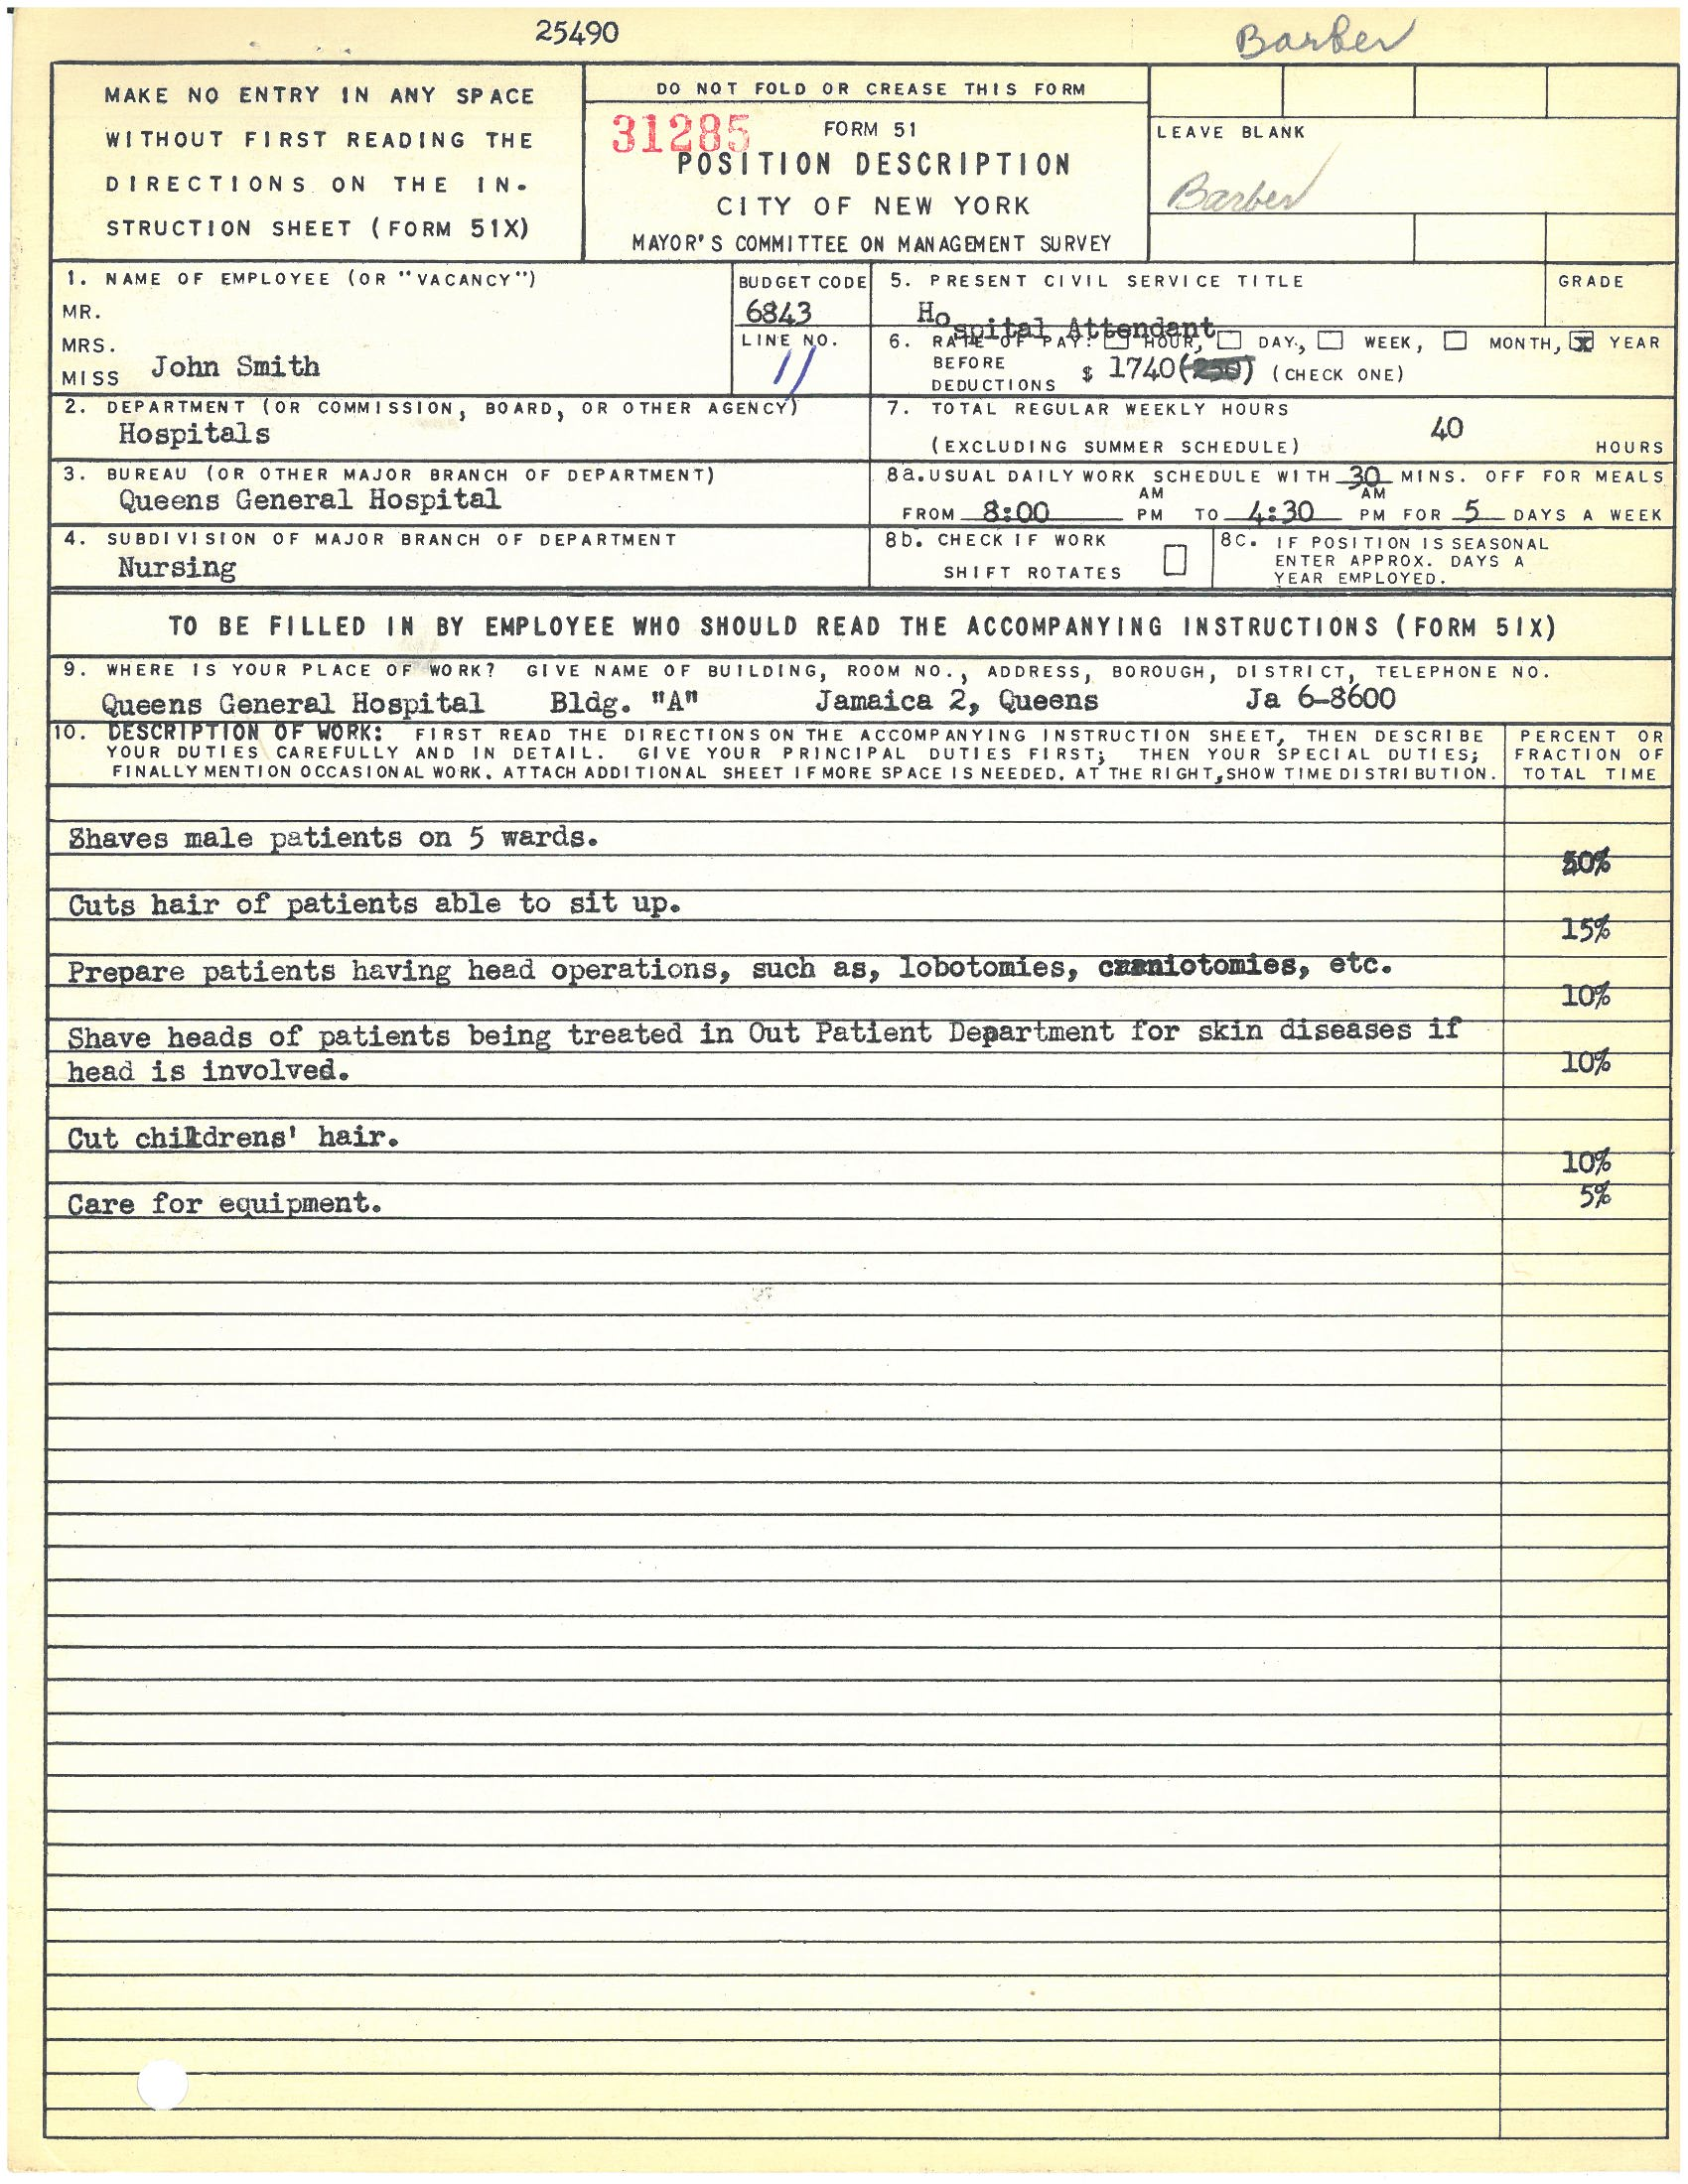 Form 51: John Smith, Barber, Queens General Hospital. Mayor's Committee on Management Survey, circa 1950. NYC Municipal Archives.